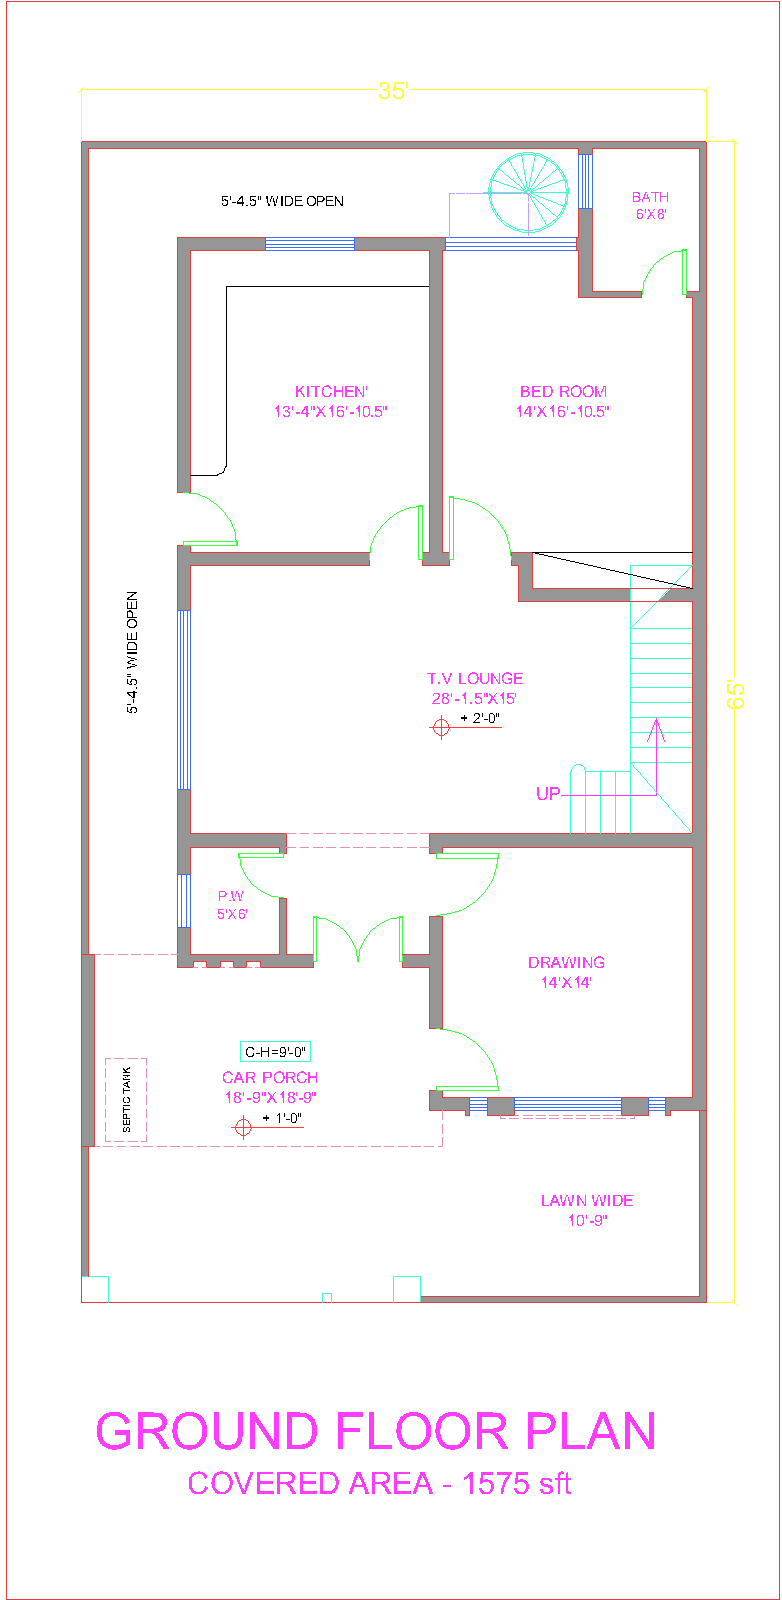 10 marla house maps in pakistan - Home Map Design